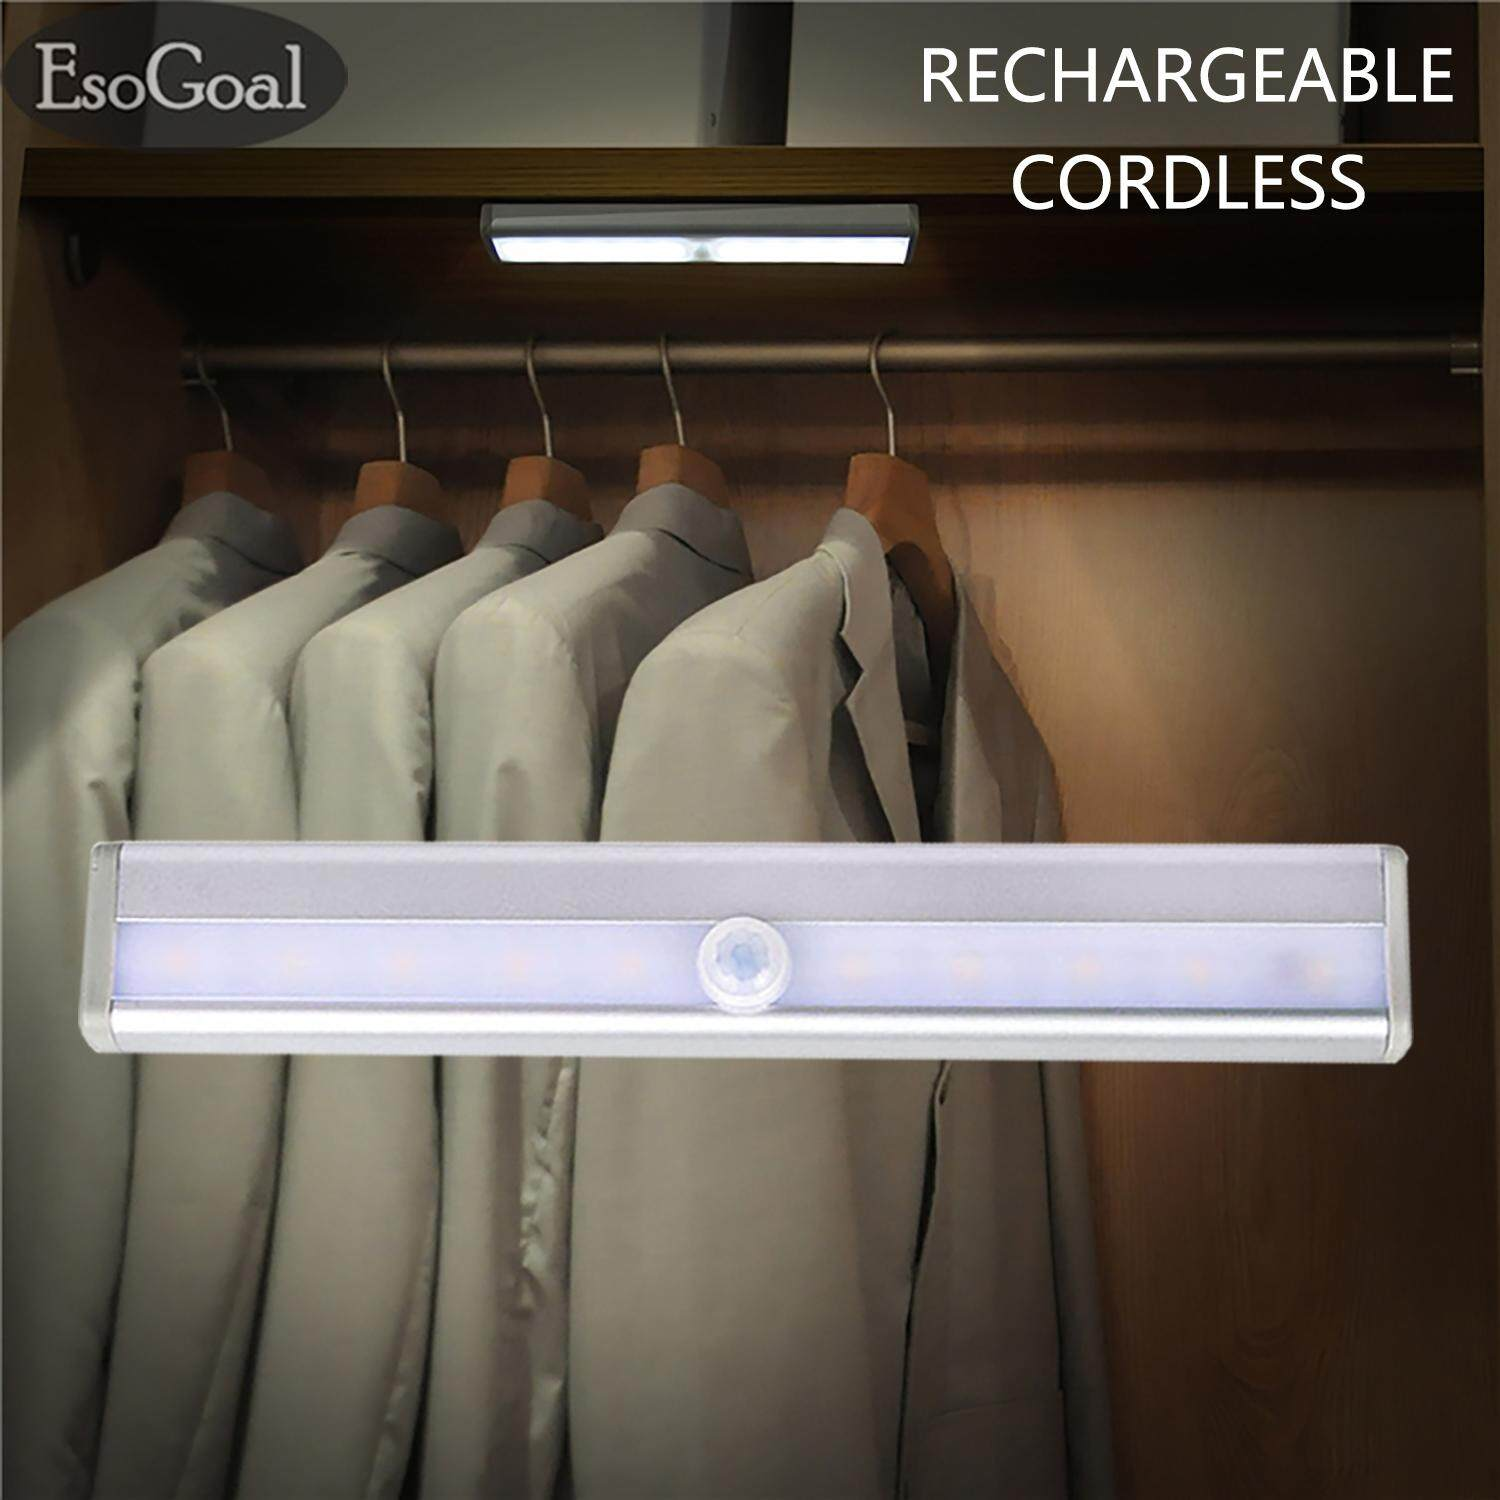 EsoGoal Motion Sensor LED Night Light USB Motion Sensor Light Rechargeble Wireless Closet Cabinet Light Indoor Bright Wall Light Lamp Singapore